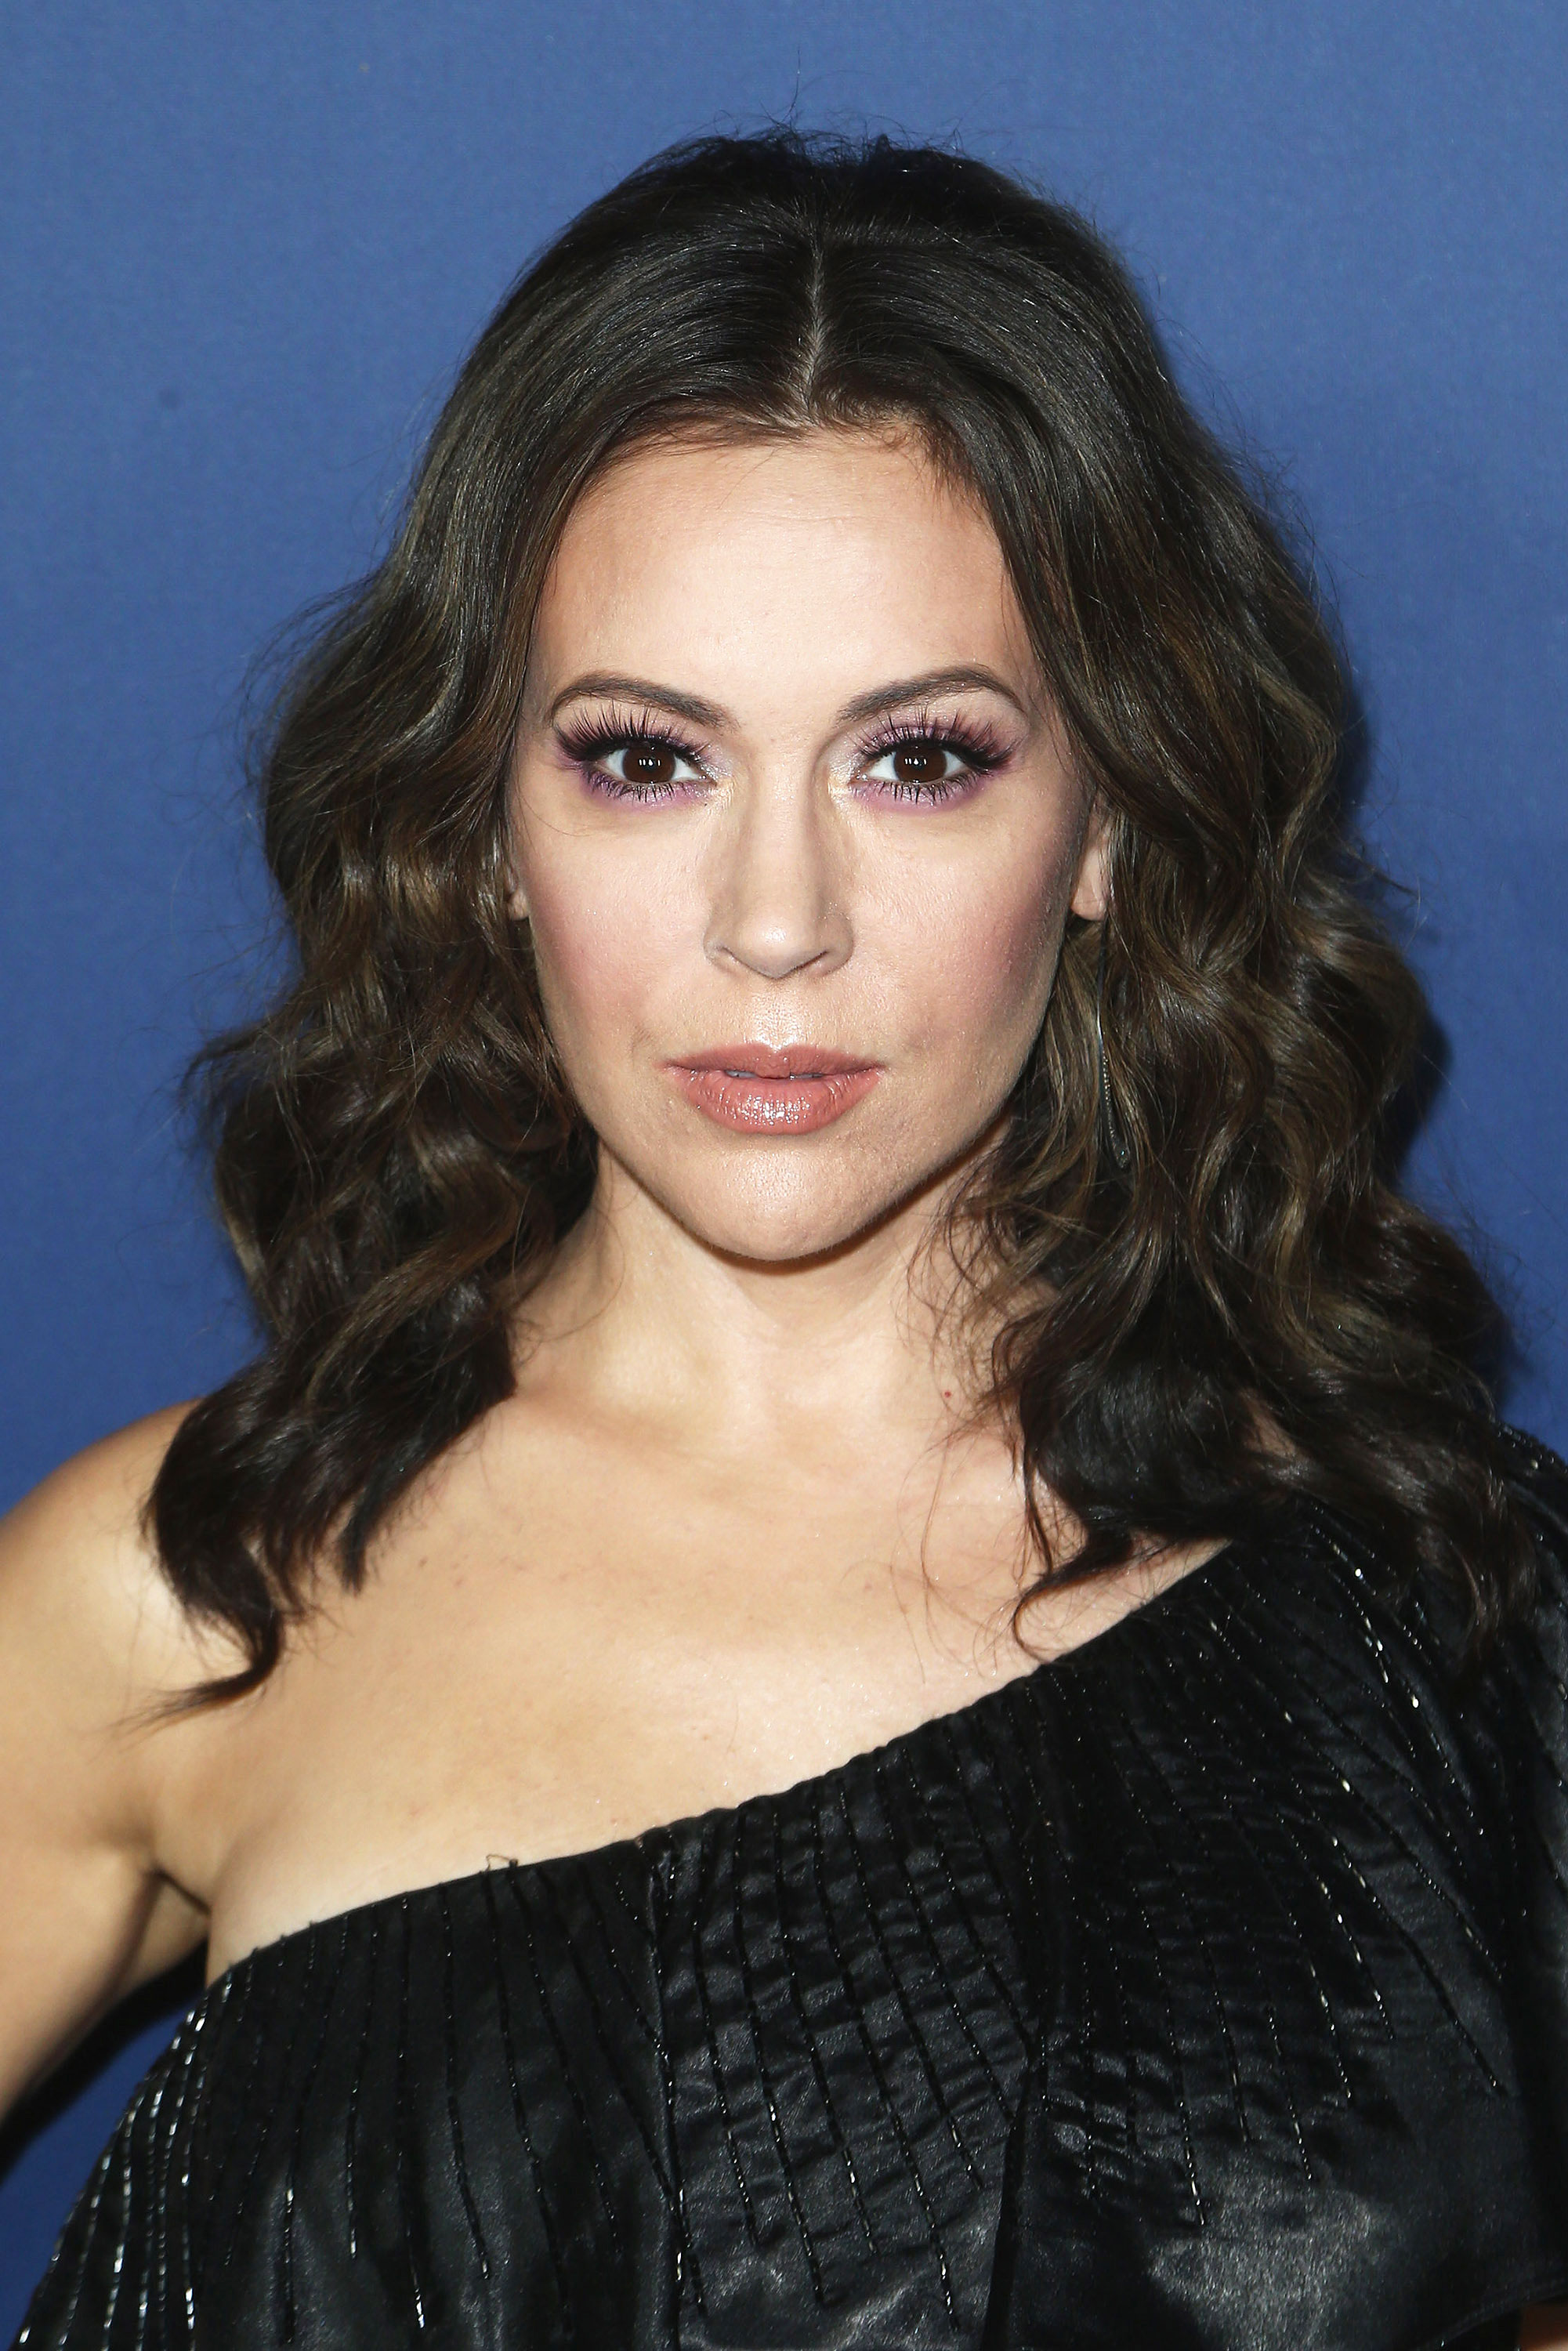 Alyssa Milano nude photos 2019